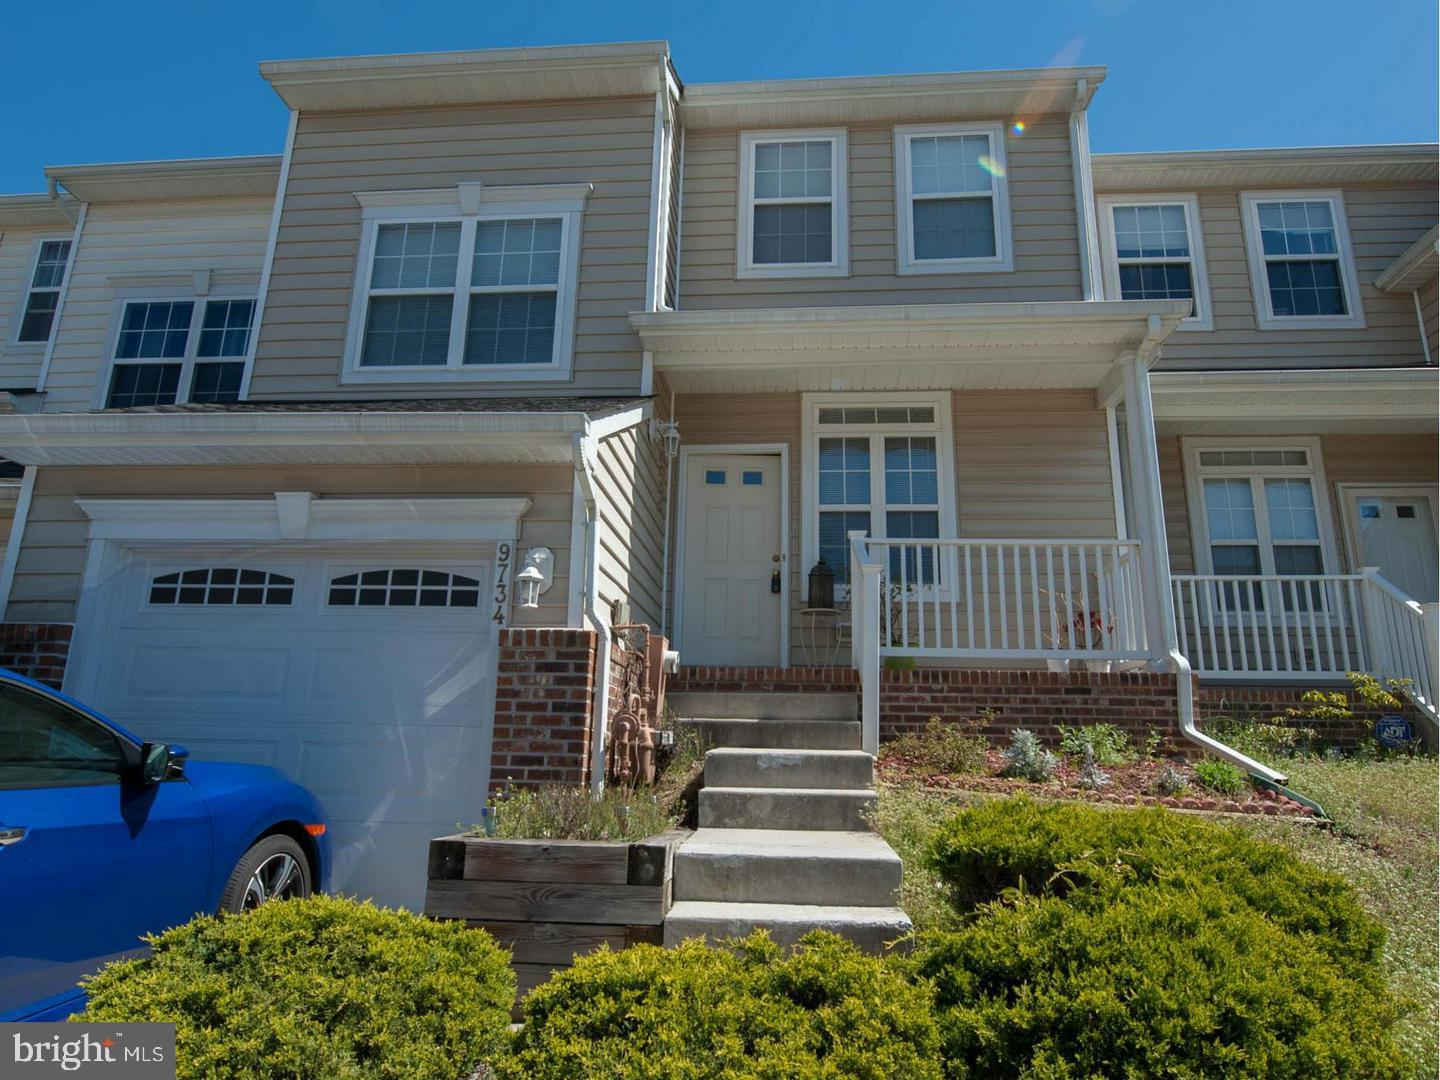 Immaculate Sunny Garage Townhome. Gourmet Kitchen, Hardwood Floors, Gas Fireplace and Mantle, Family